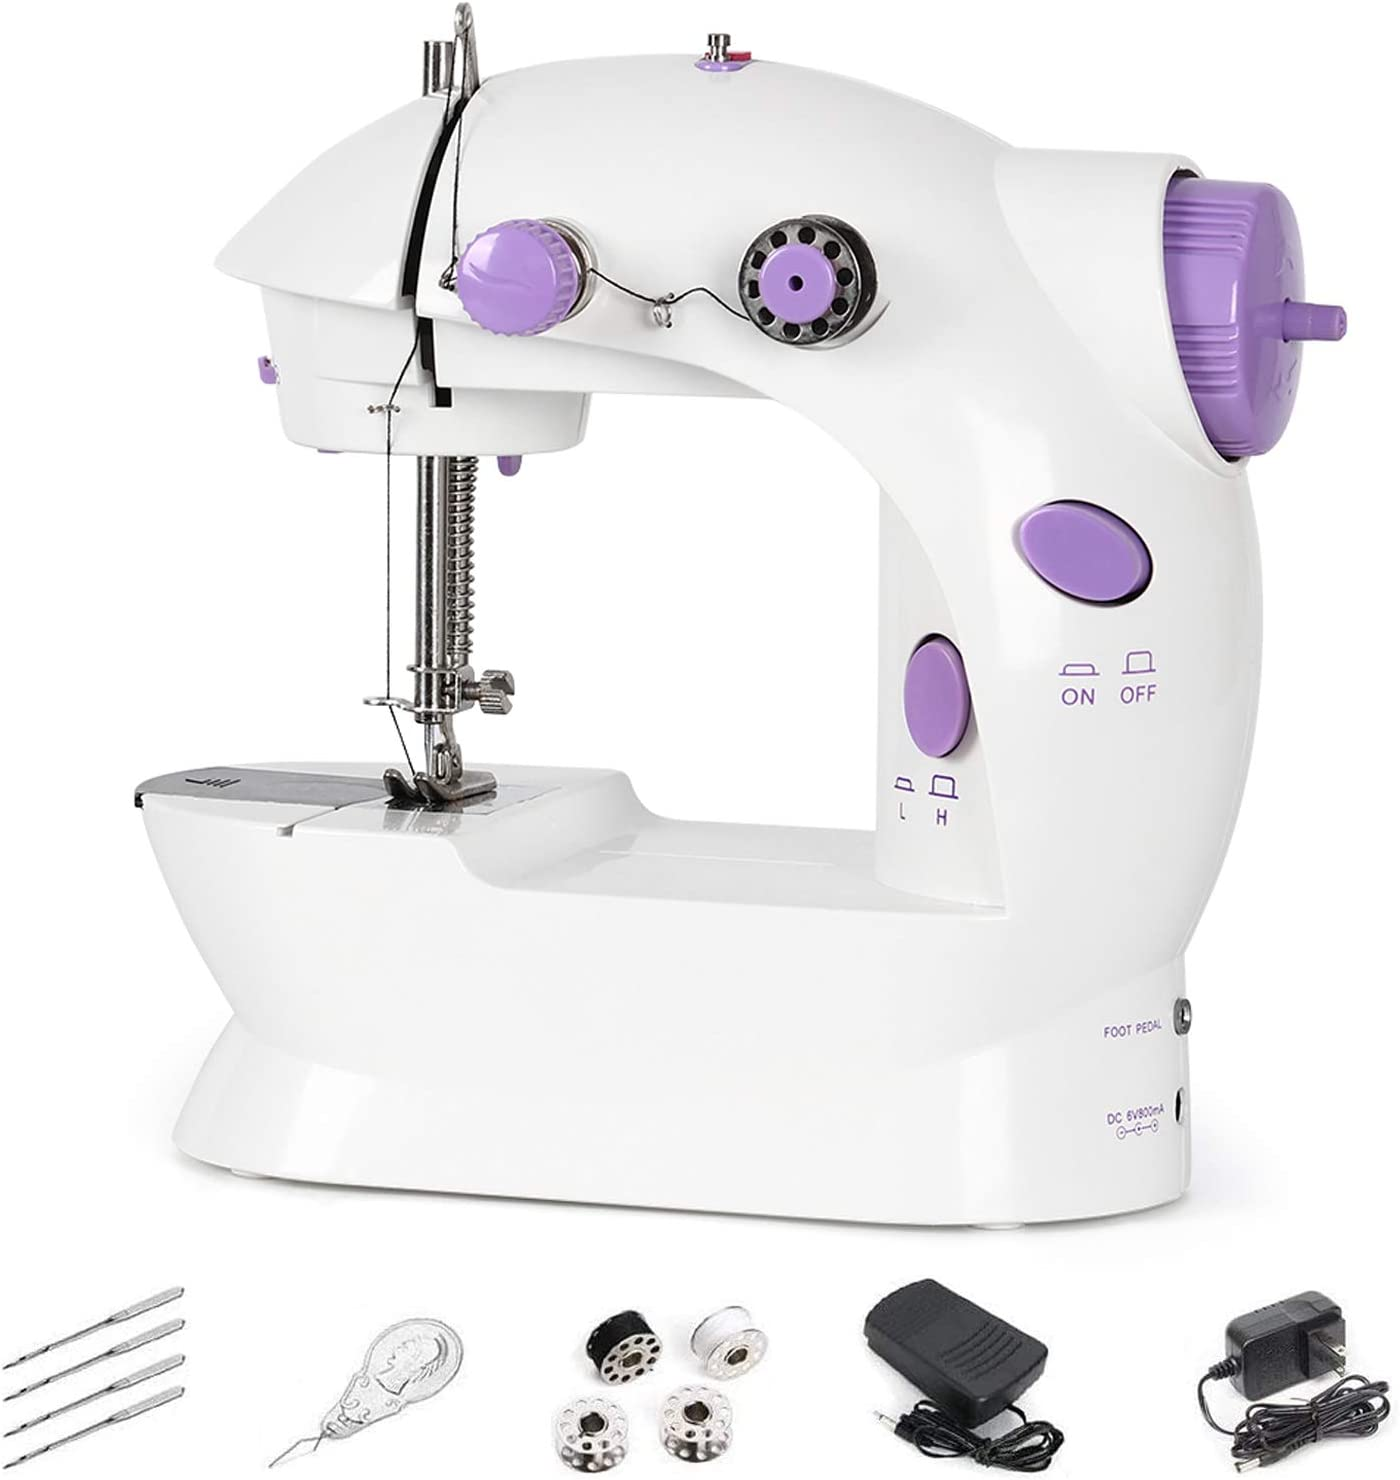 Portable Mini Sewing Machine Electric for Beginners Sewing Kit Crafting Mending Machine Handheld with Speed Double Thread Foot Pedal Handheld